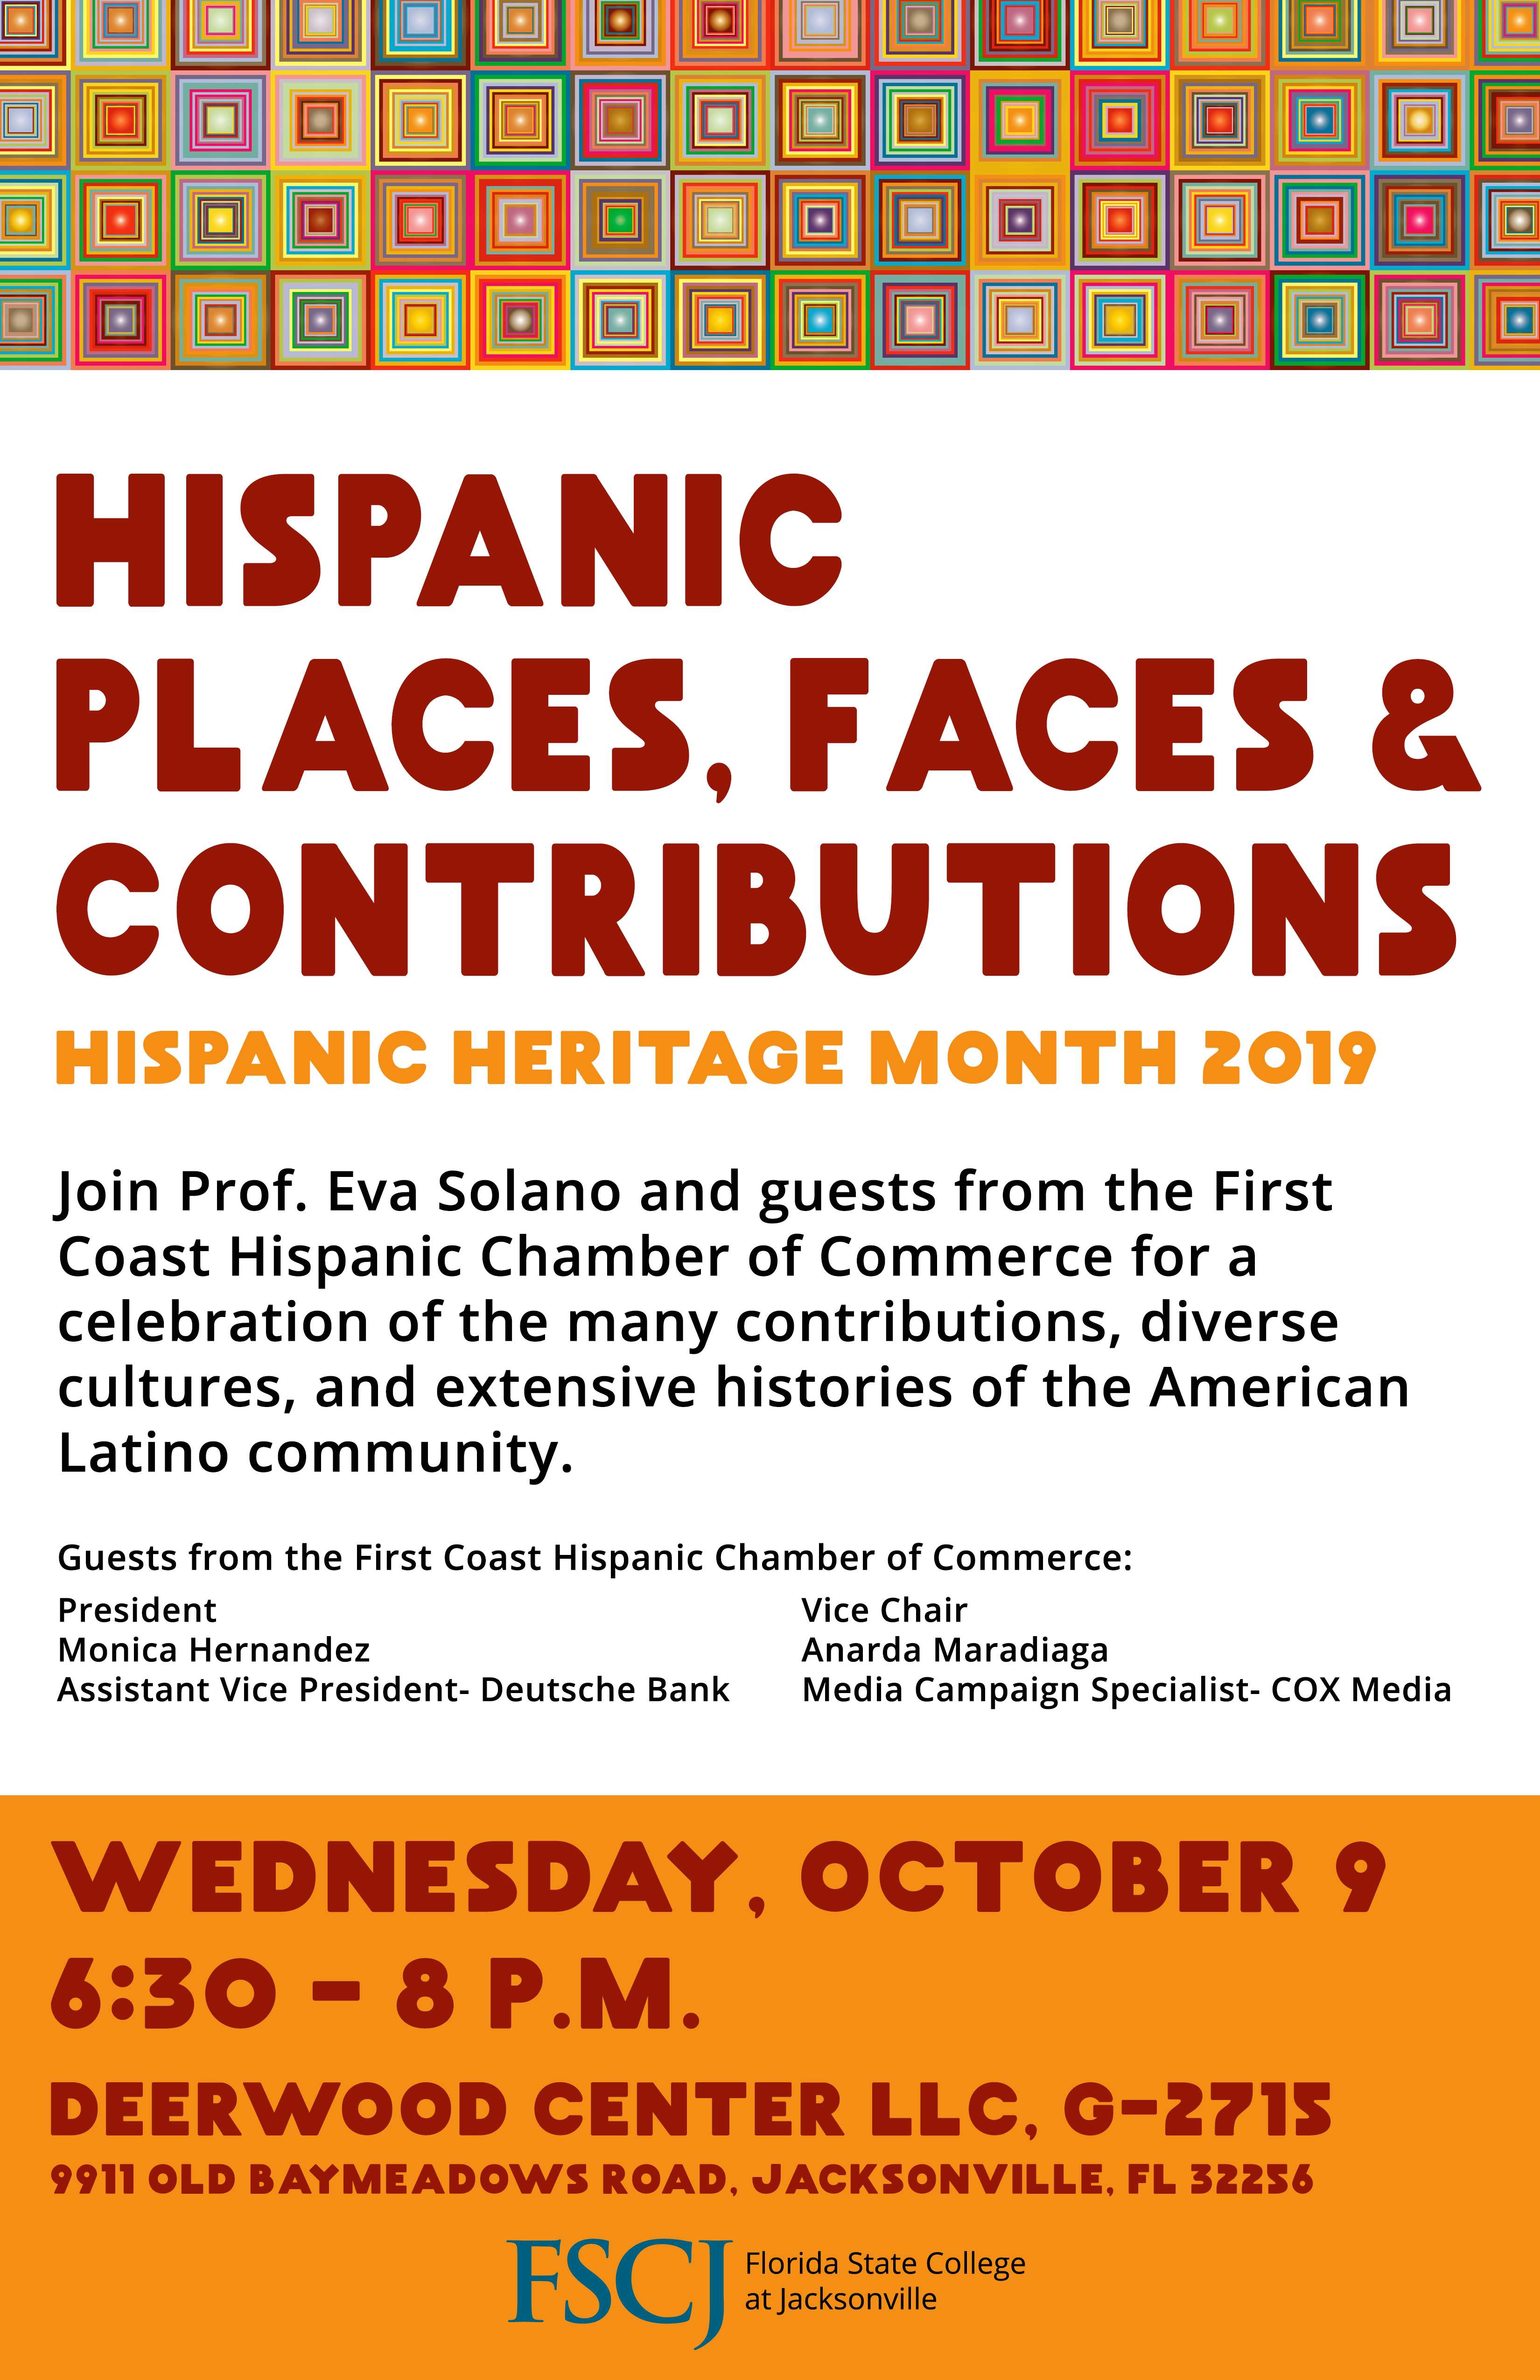 Hispanic Places, Faces and Contributions: Hispanic Heritage Month 2019